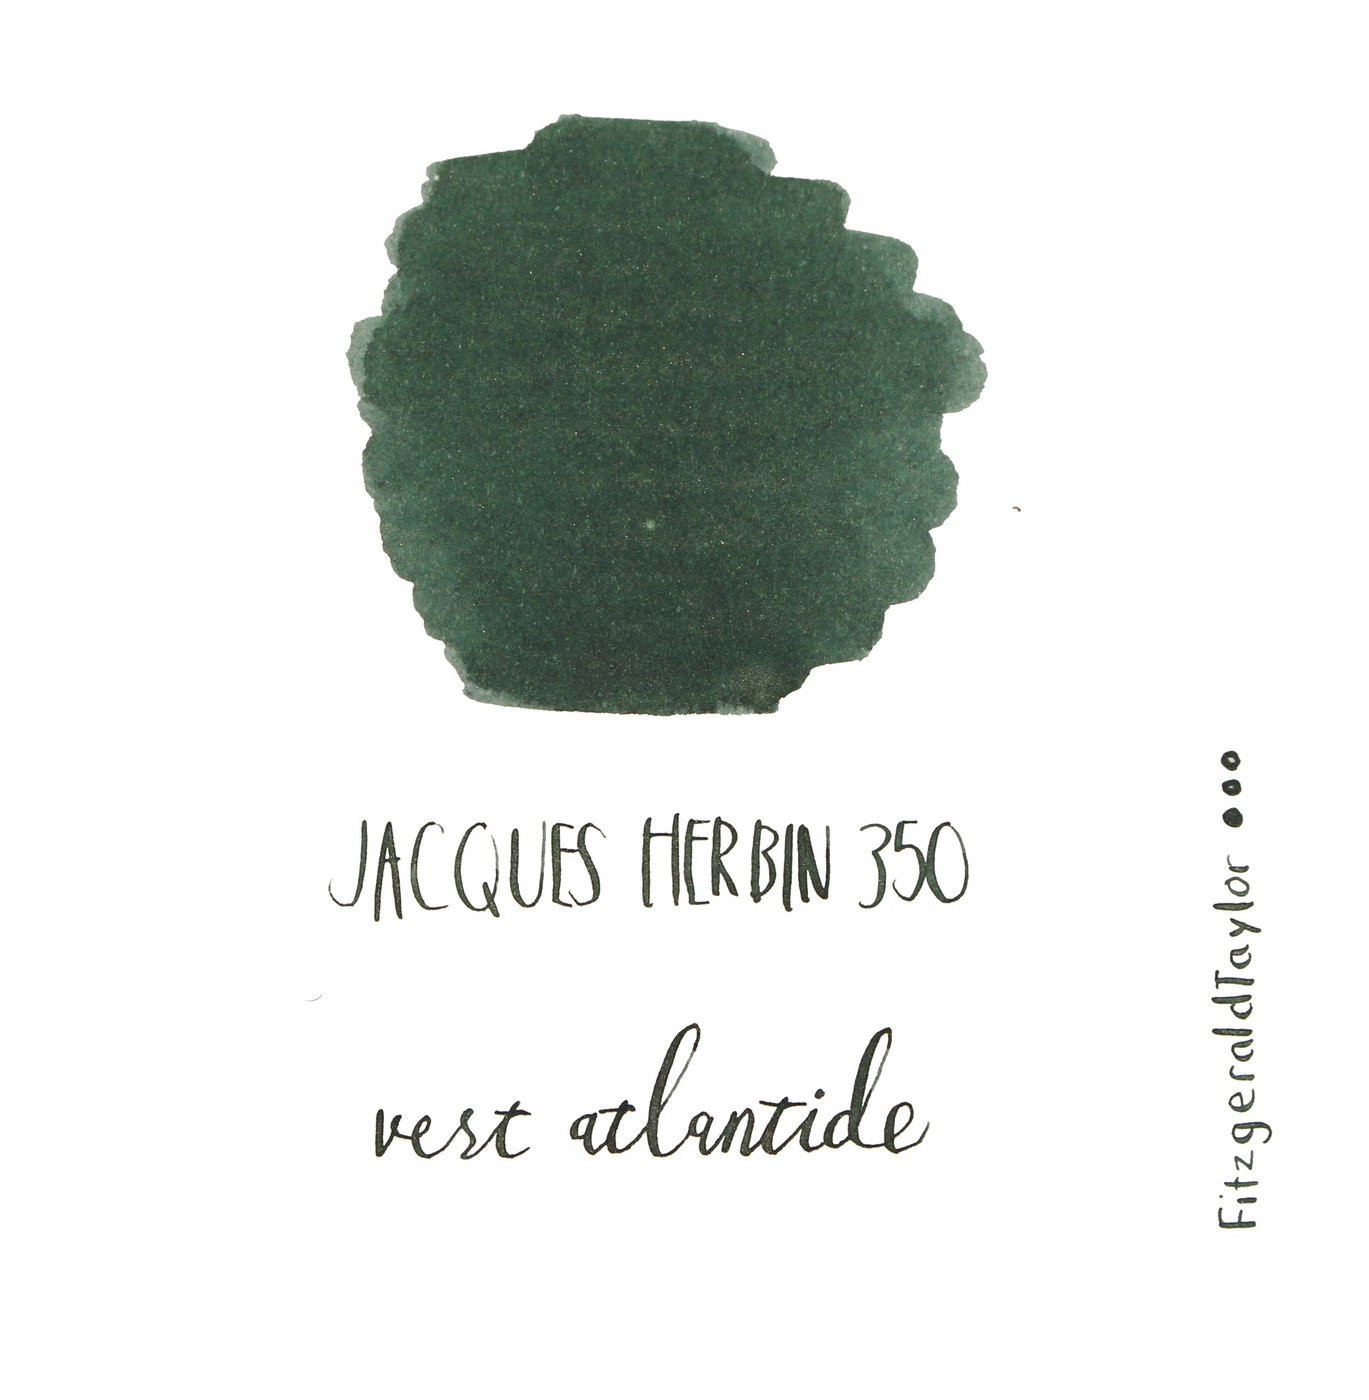 Jacques Herbin 350 Anniversary fountain pen ink